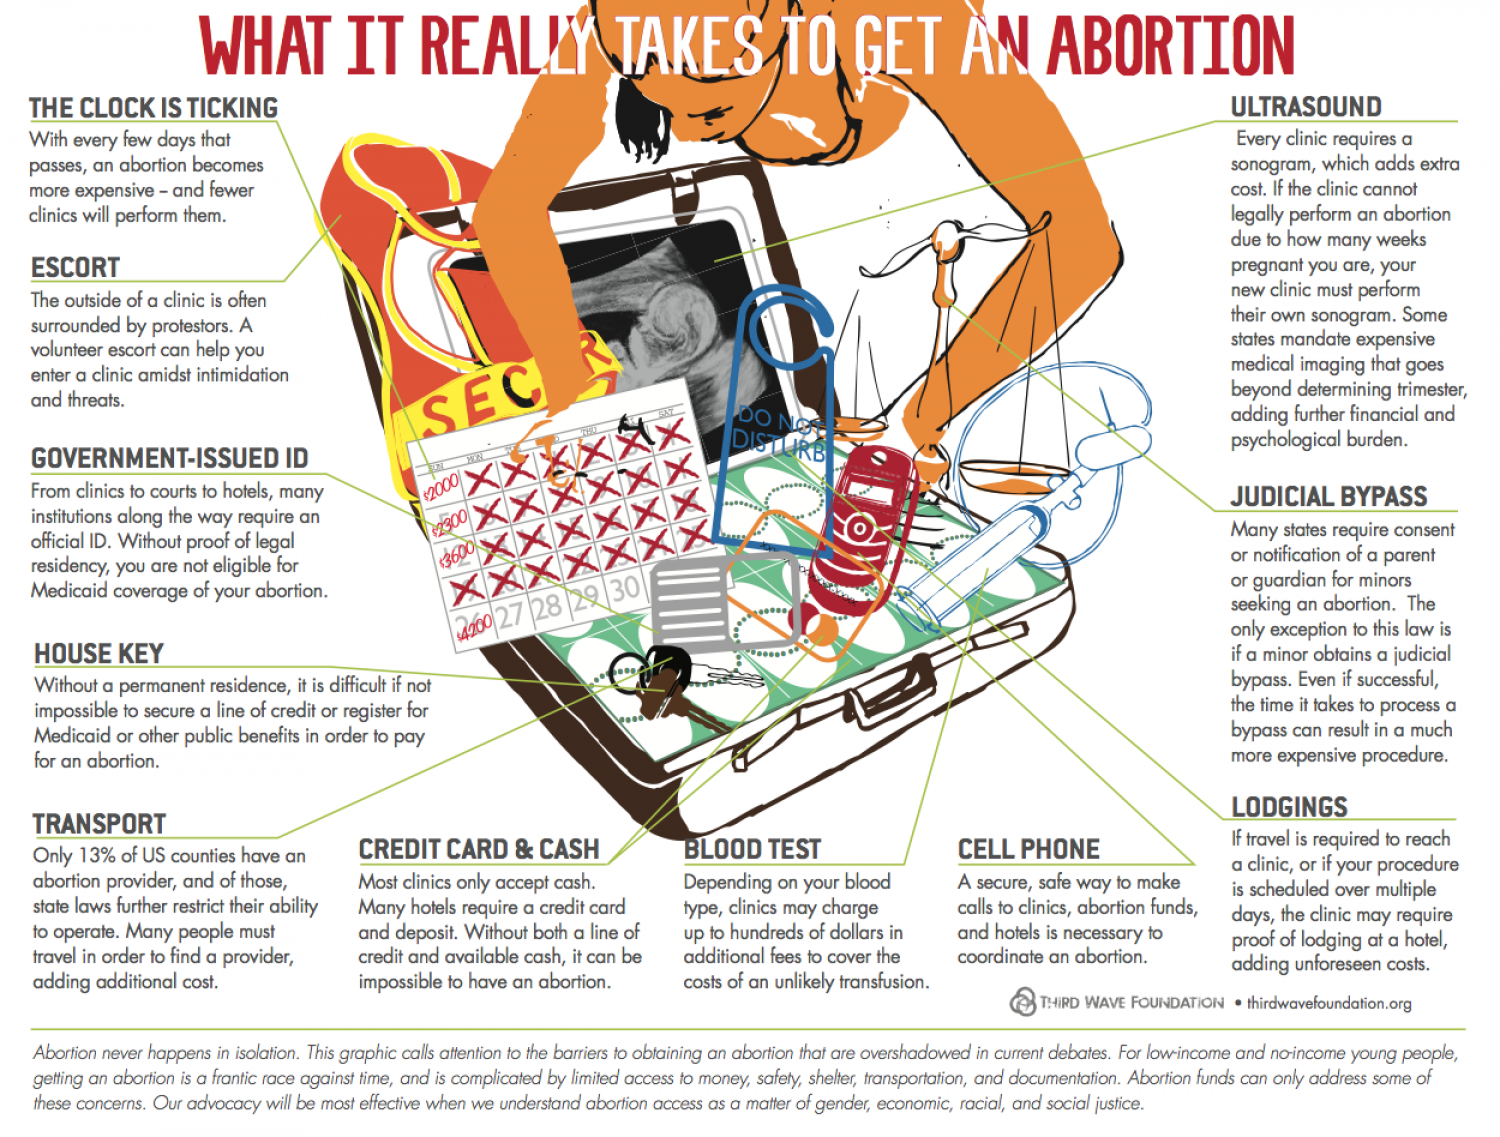 What It Really Takes to Get an Abortion Infographic